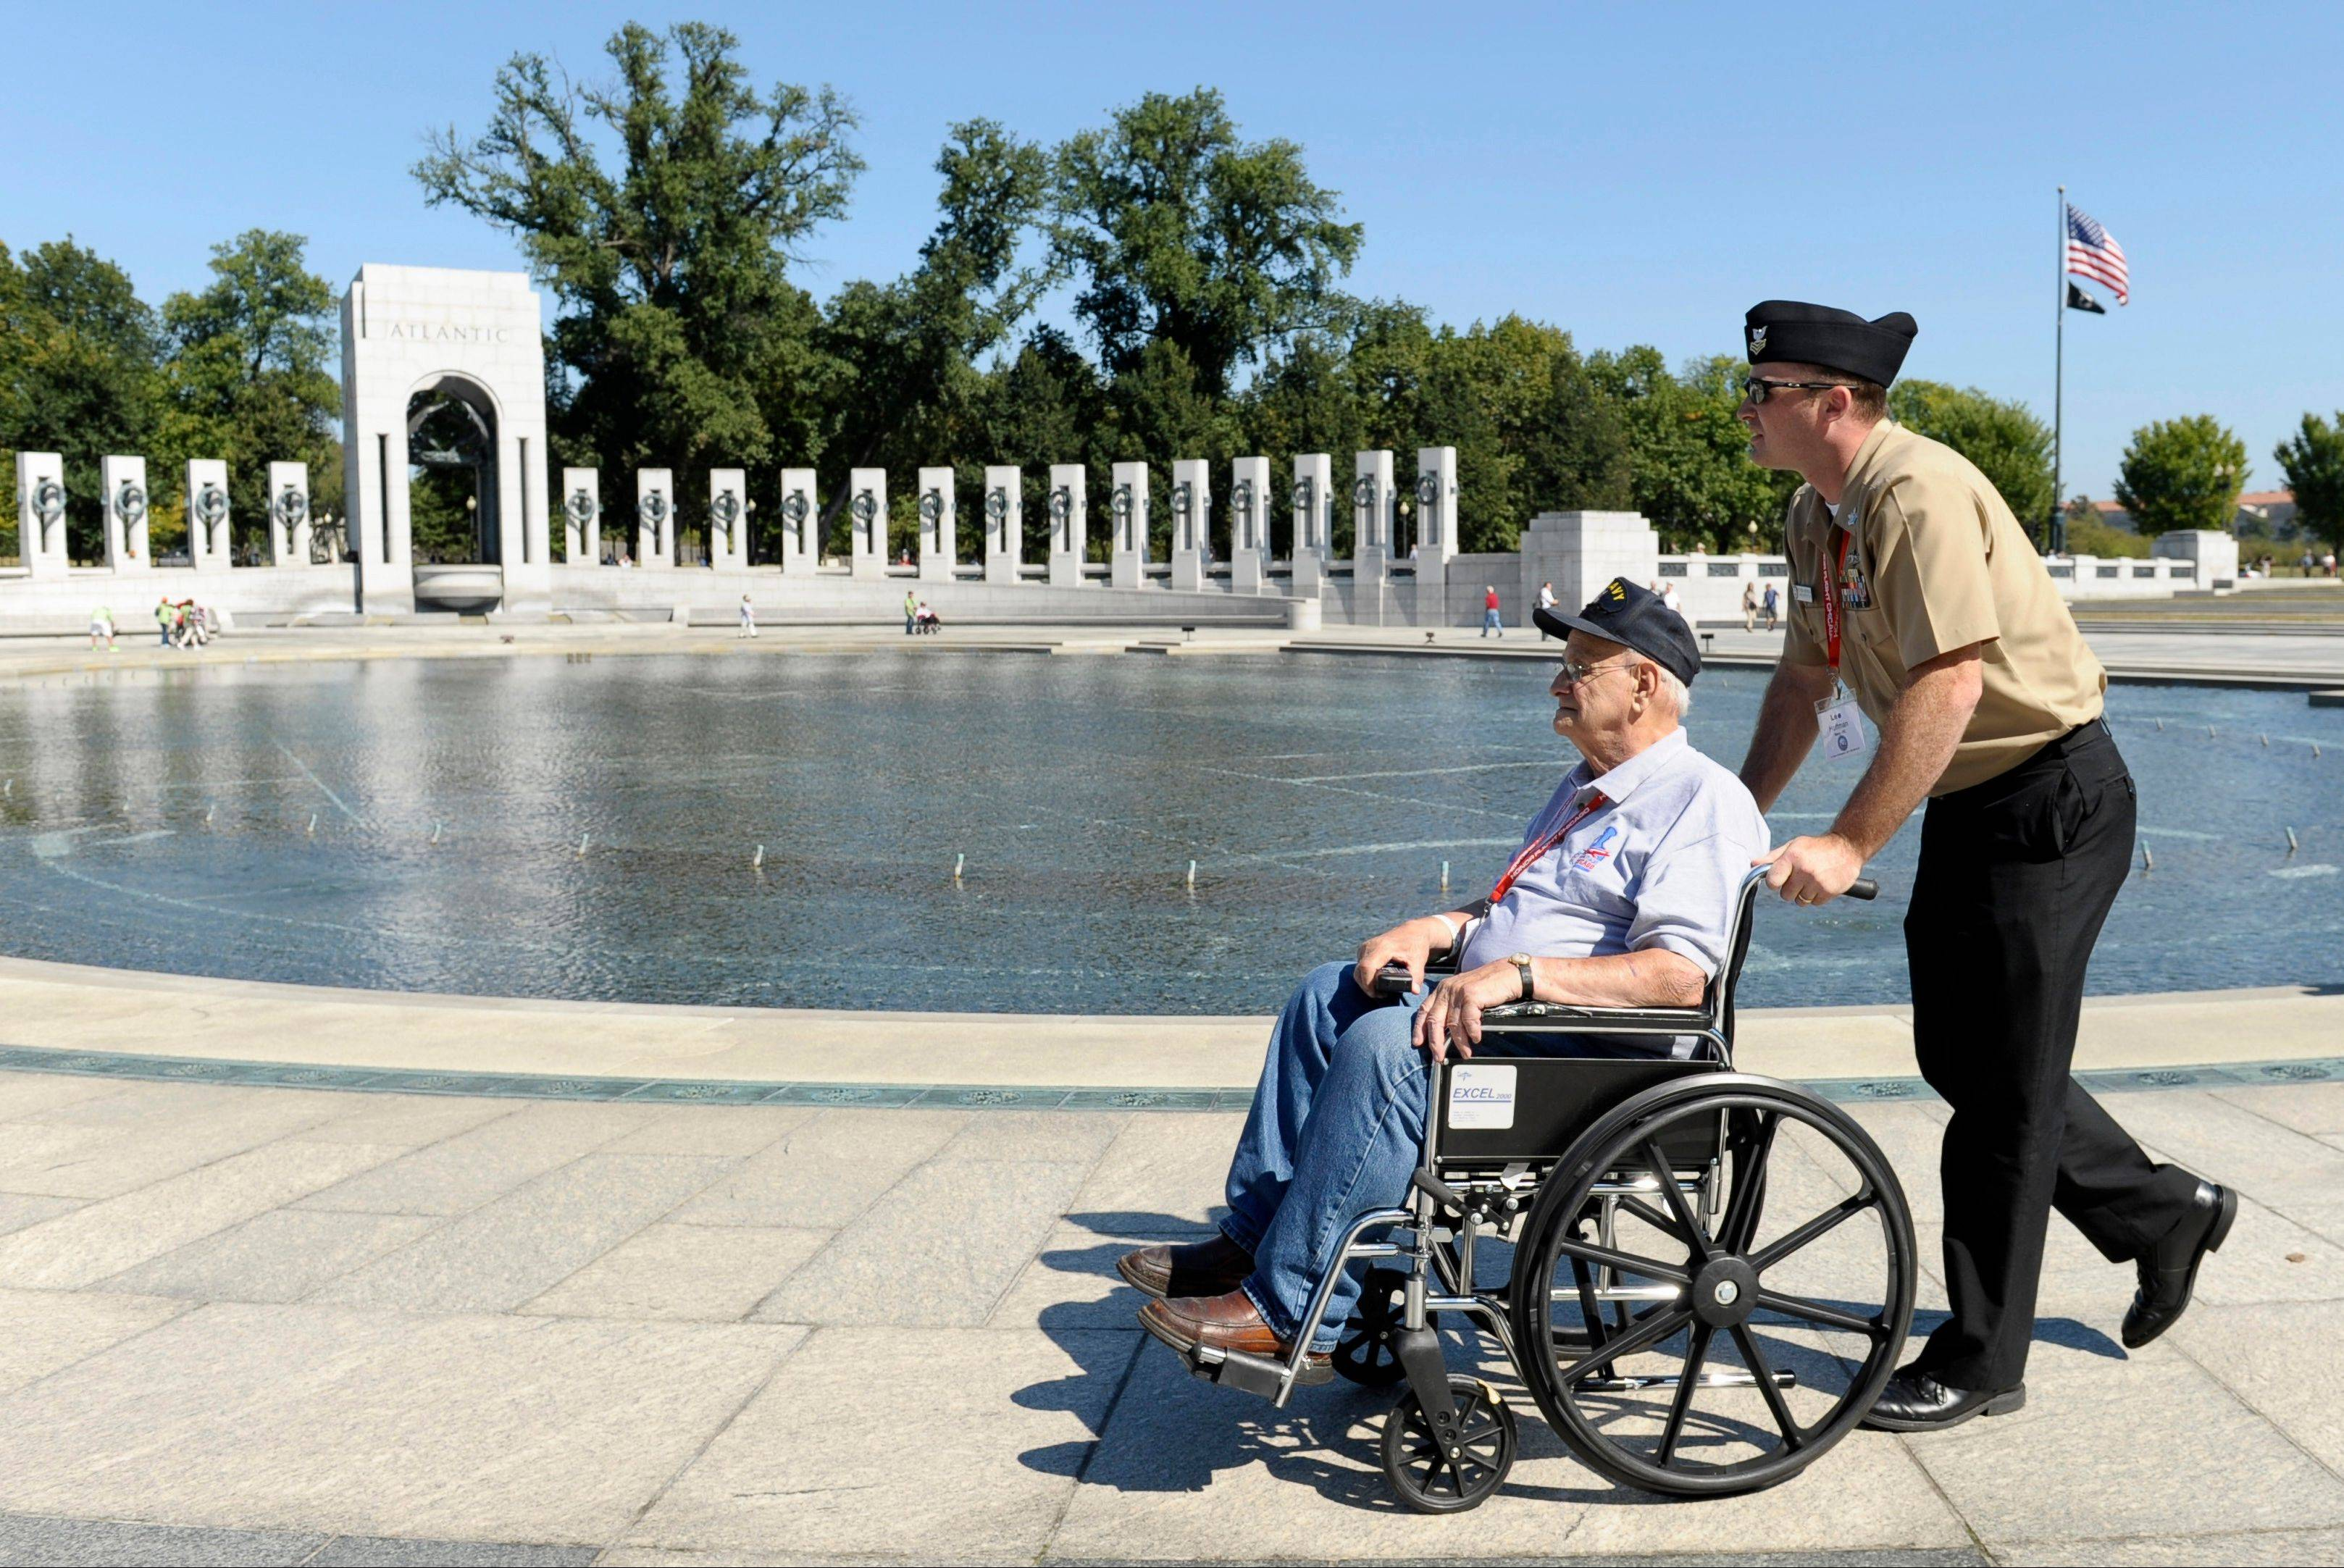 World War II veteran Gus Nicholas of Glendale Heights is pushed by Navy Petty Officer First Class Lee Hoffman on Wednesday as they visit the World War II Memorial in Washington, D.C. Nicholas came to Washington on an Honor Flight despite the shutdown of the federal government.